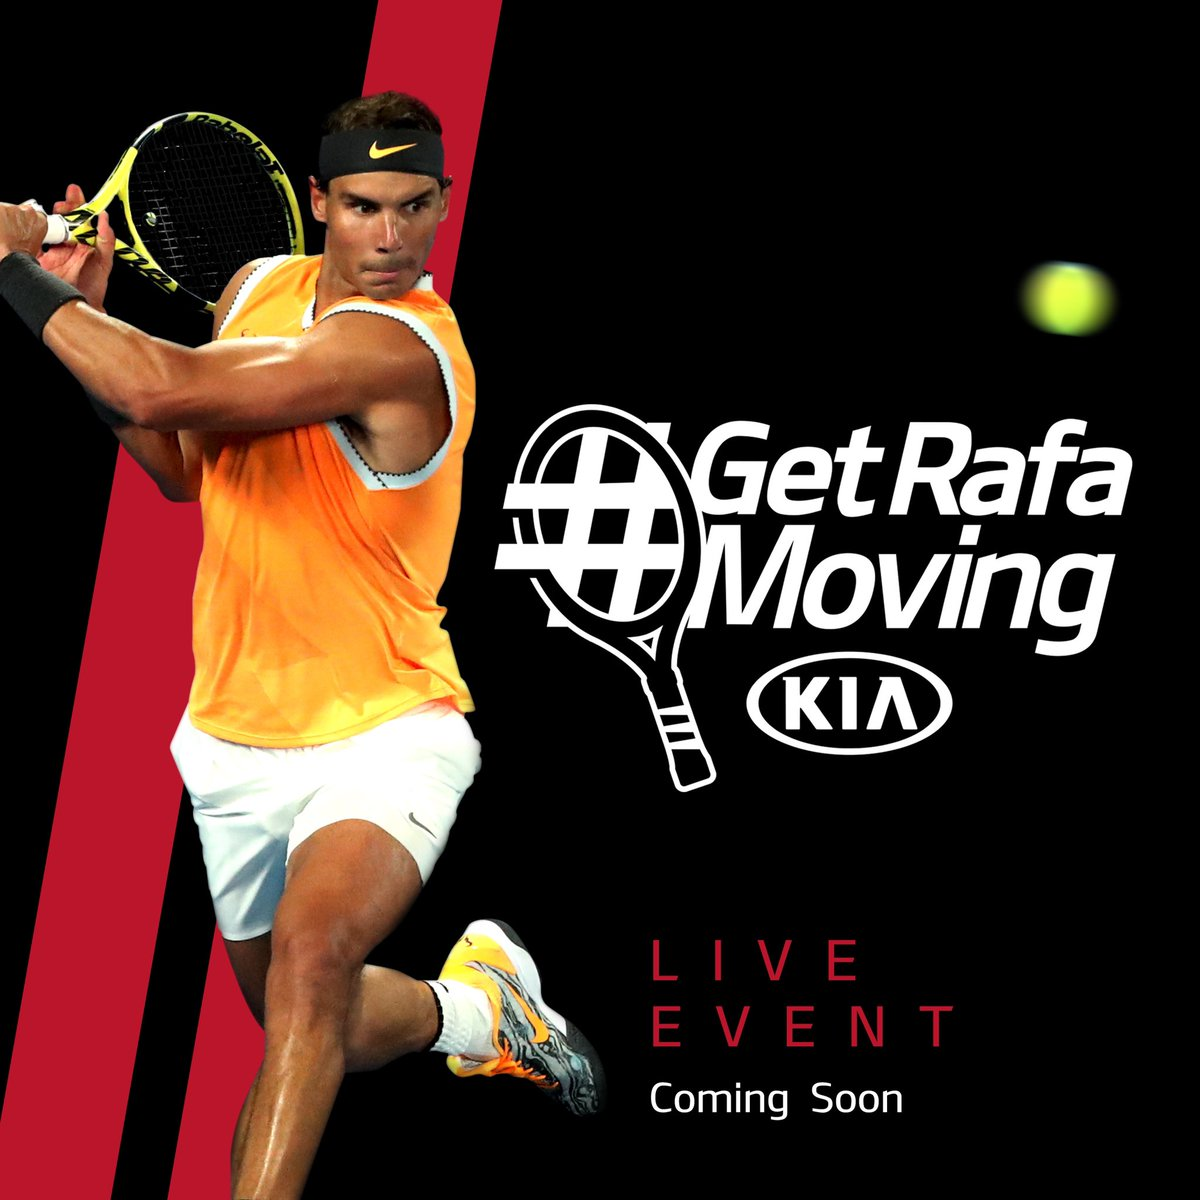 Tennis is coming back, so to help me get ready we'll be hosting an interactive live event, #GetRafaMoving on 24/07. Don't miss it. https://t.co/qLZFyOyTyp